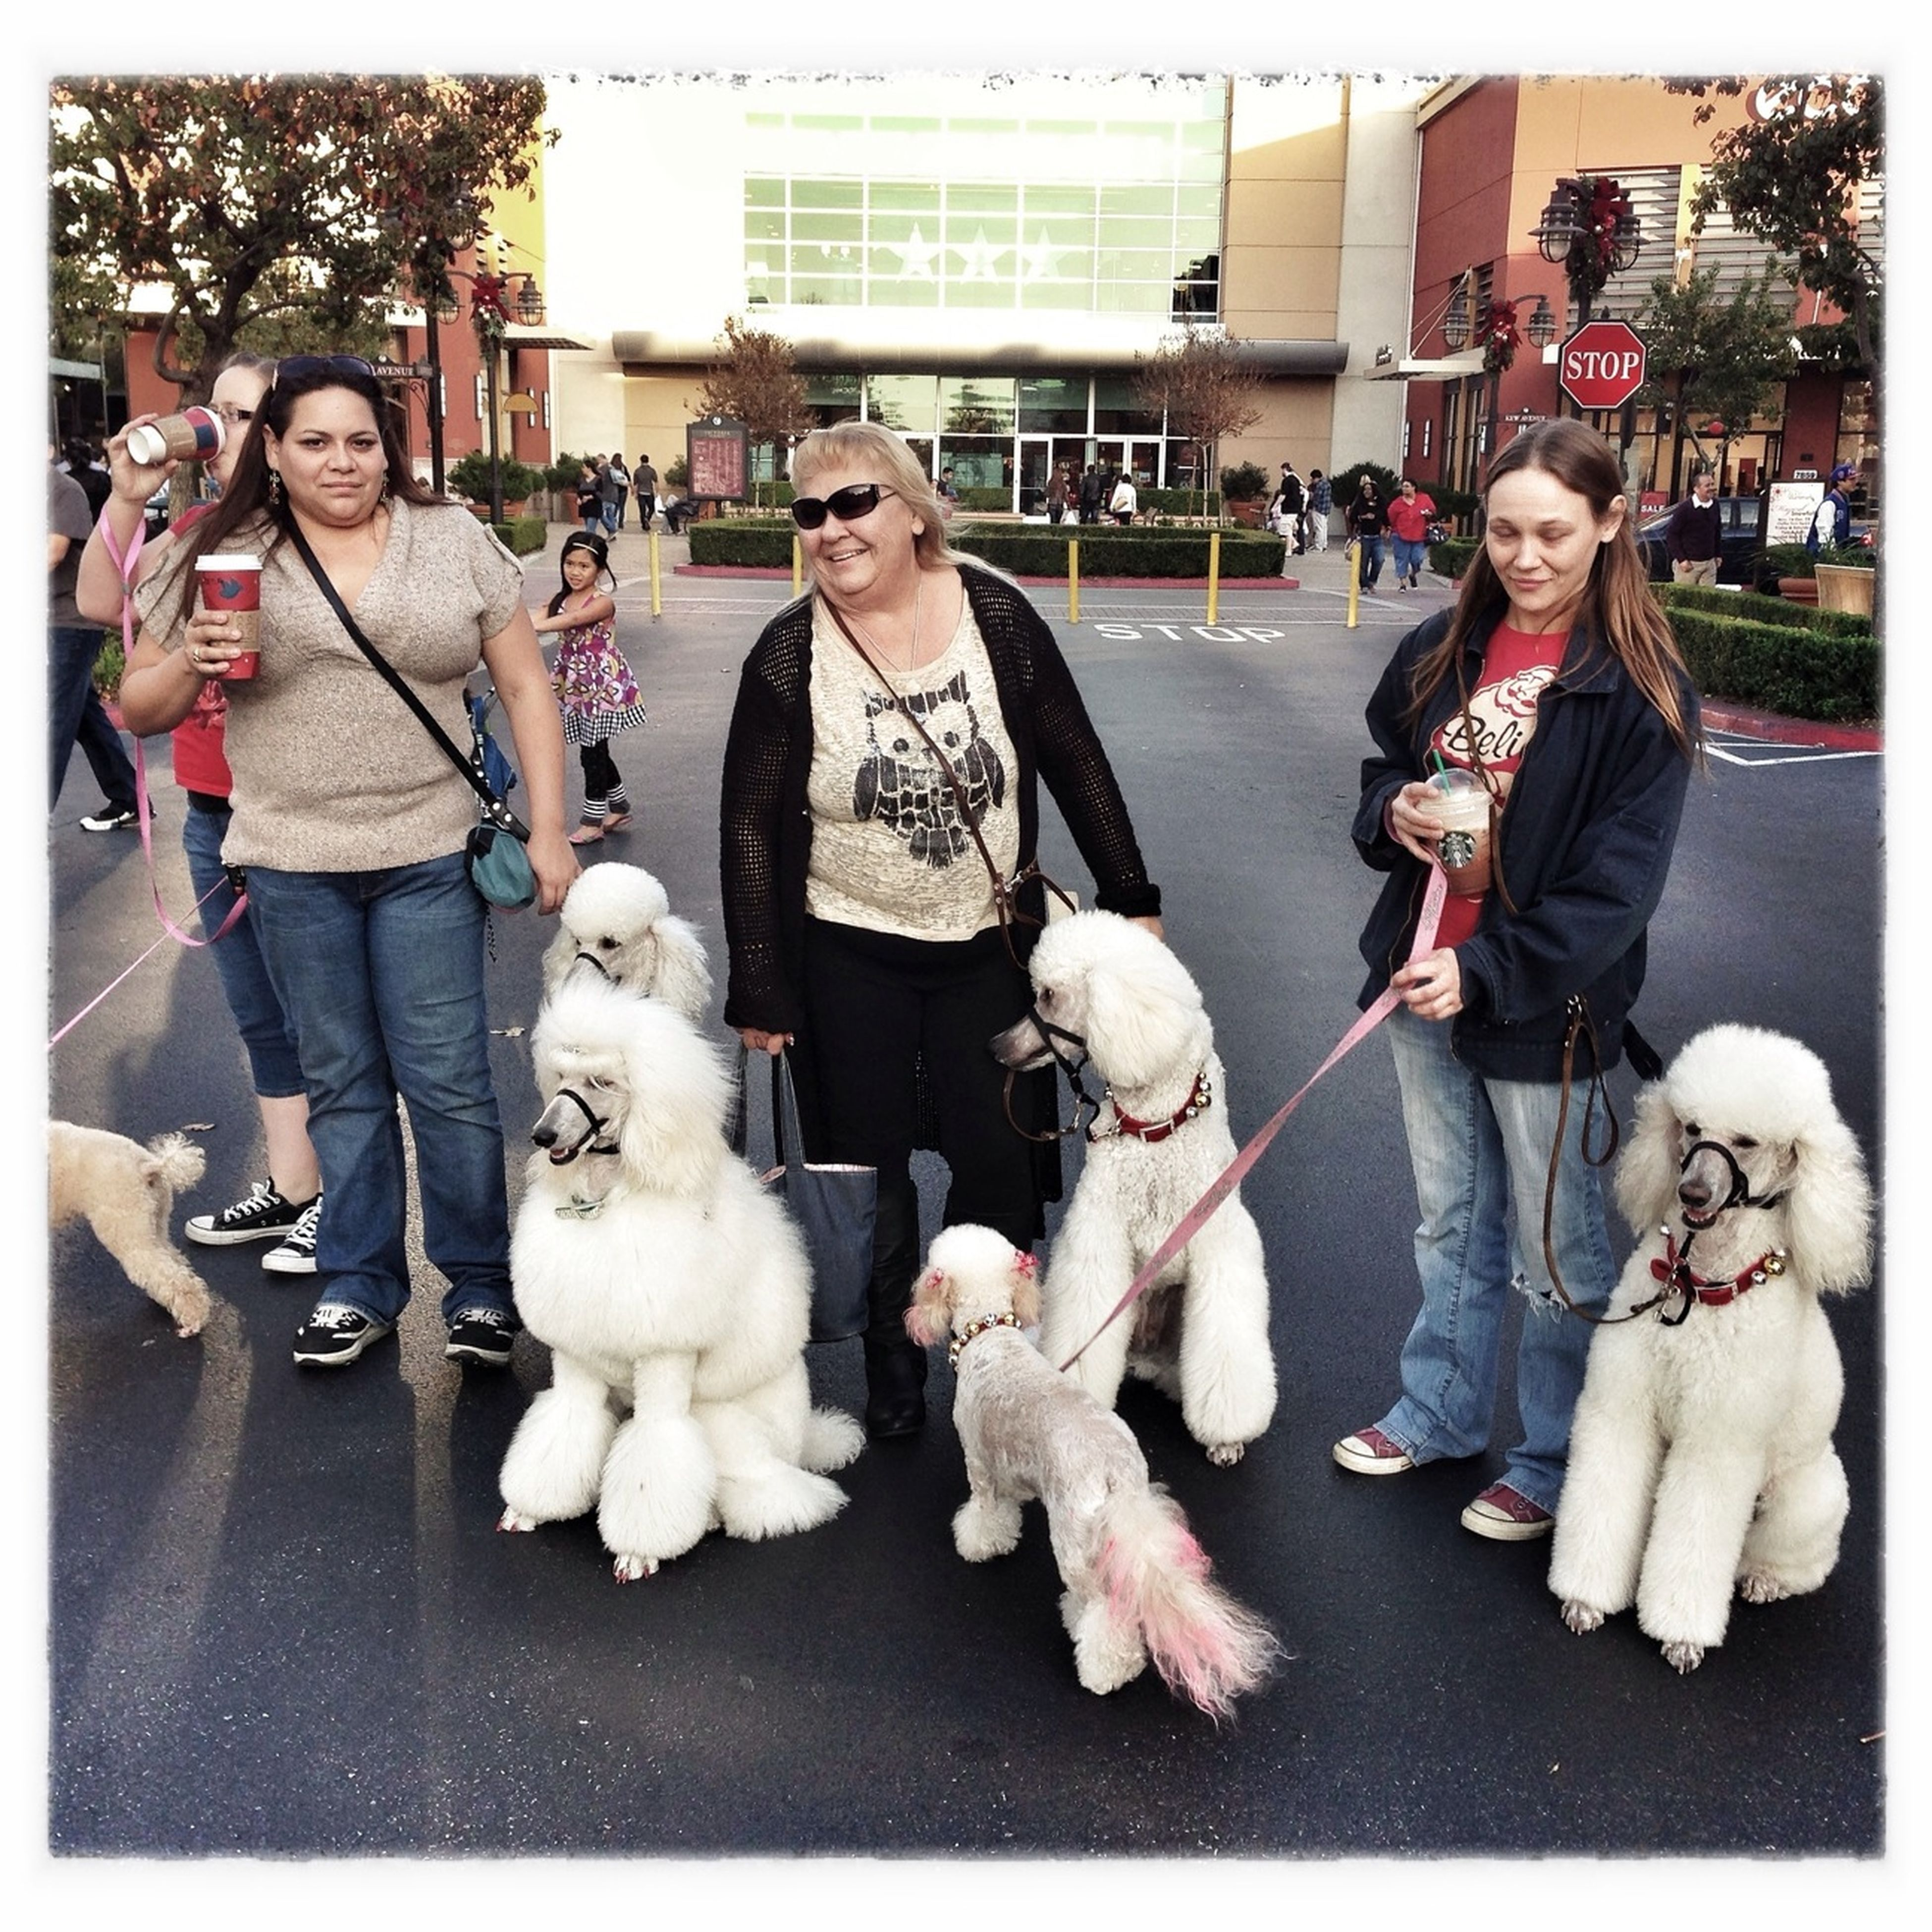 Giant Poodles